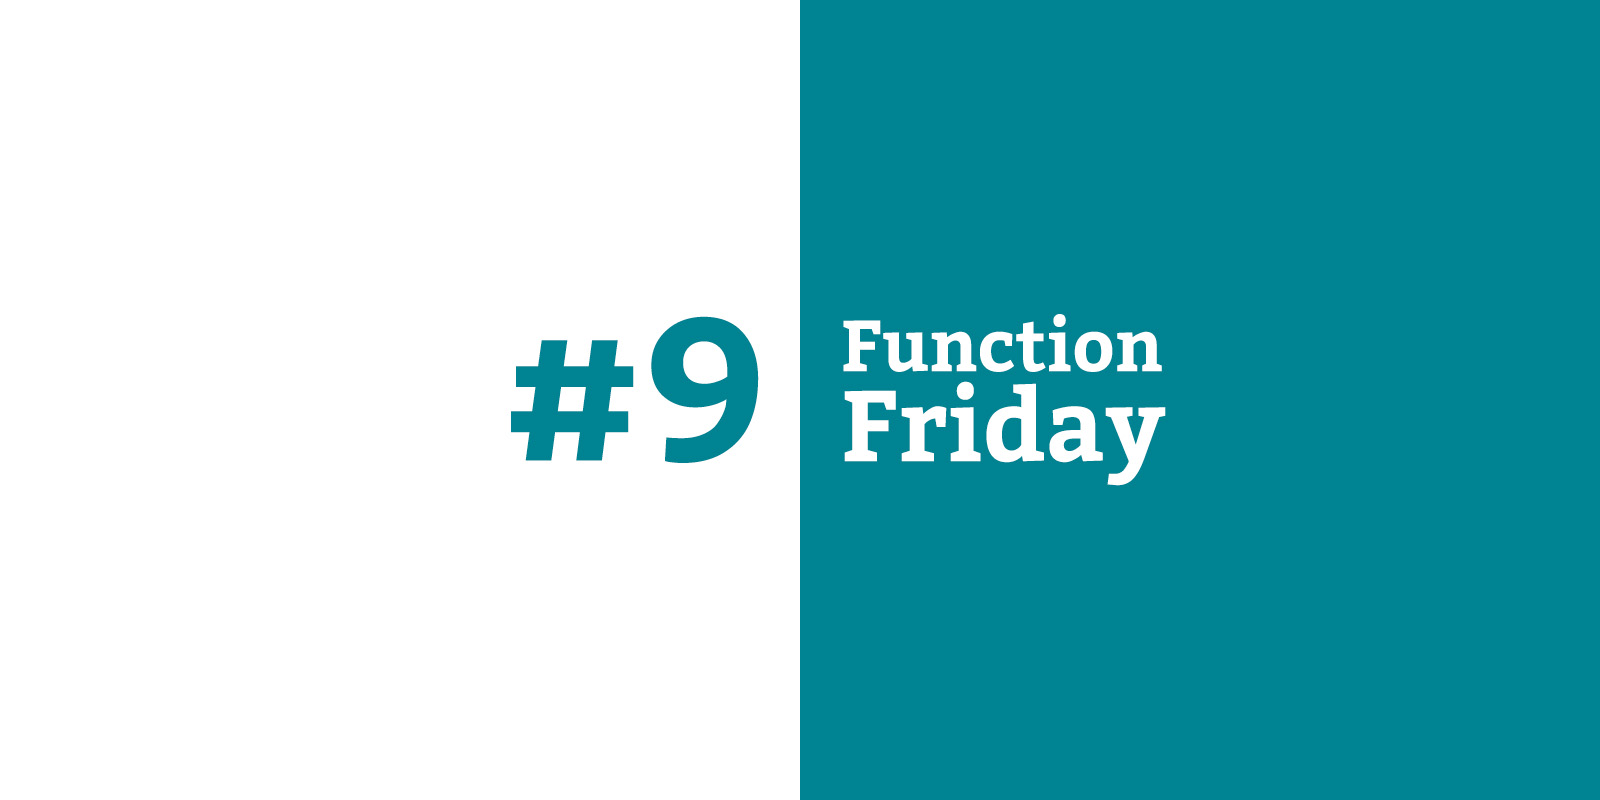 Function Friday #9